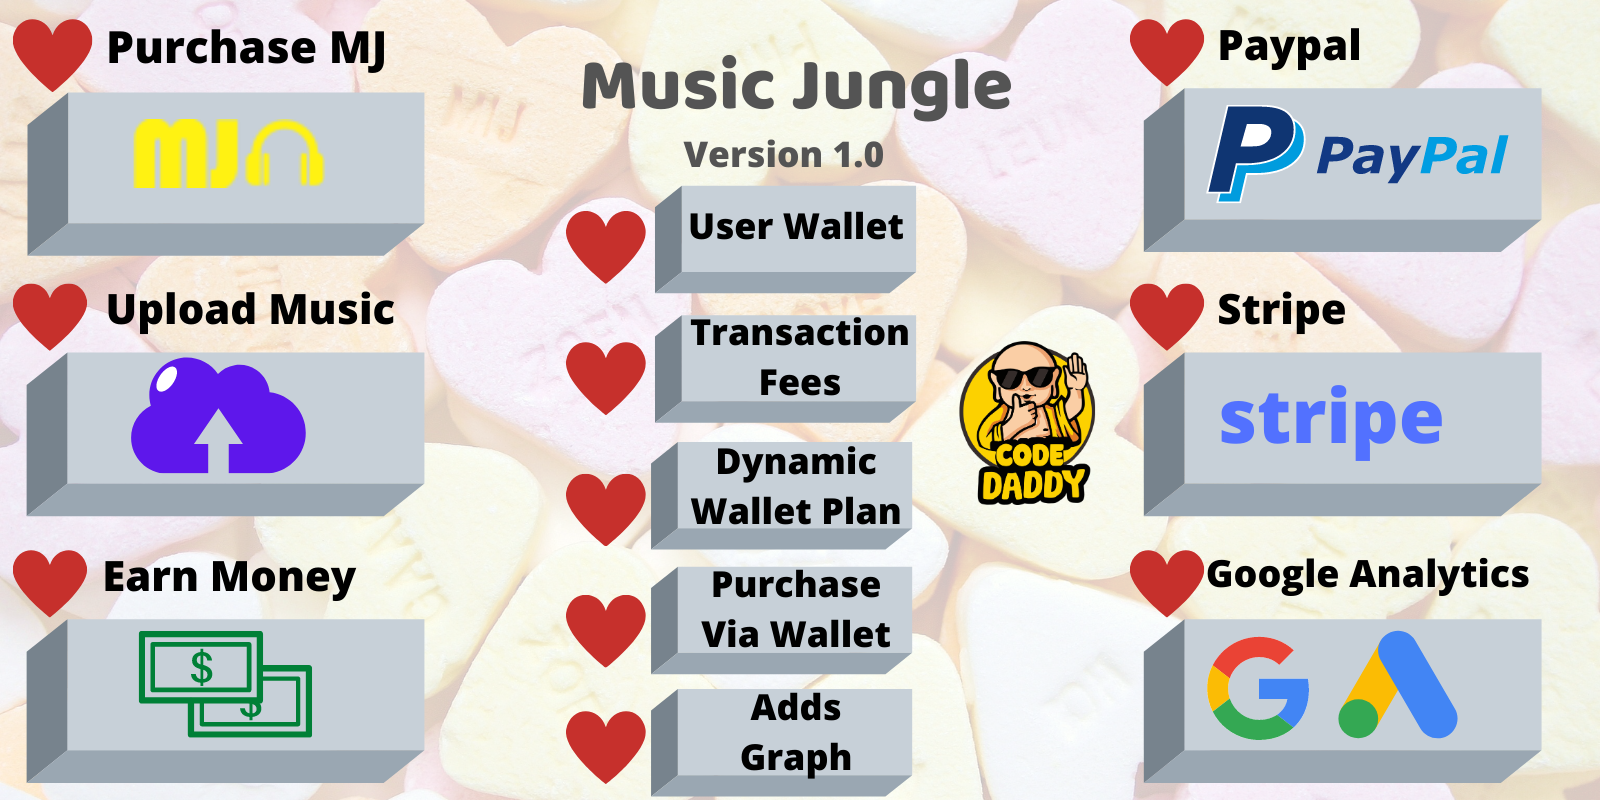 Music Jungle - Upload And Sell Music Work